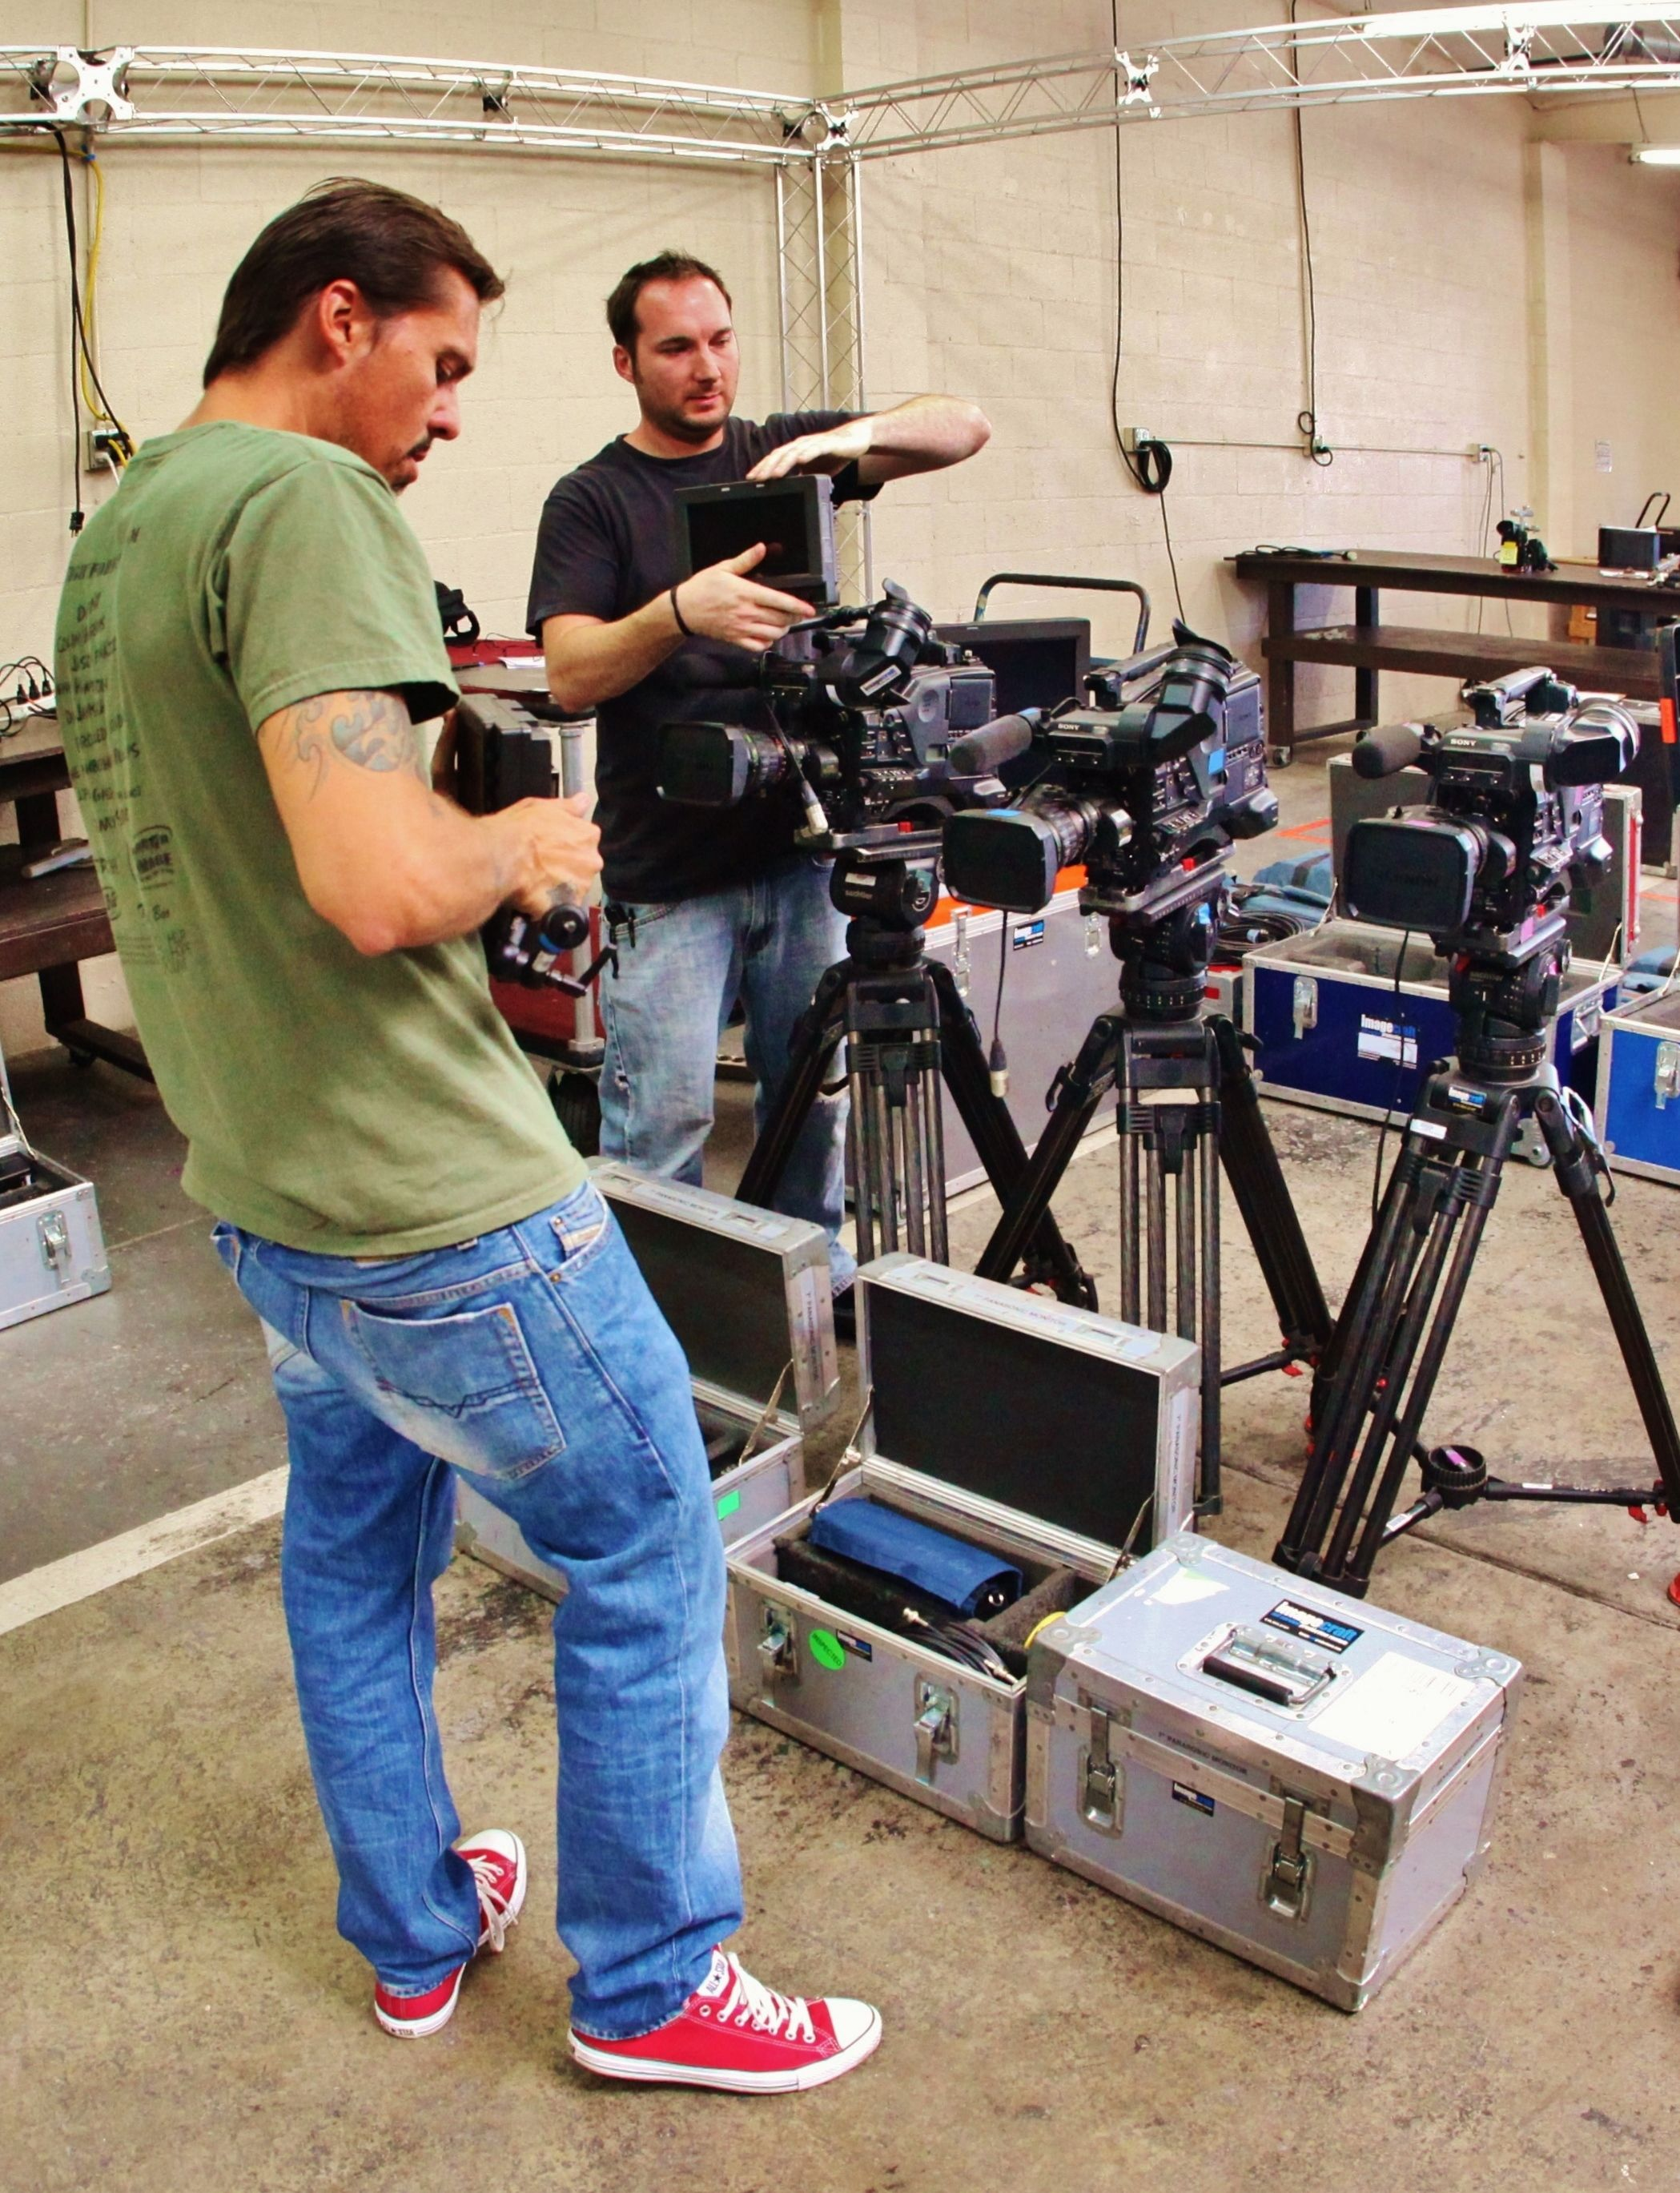 Lenny & Darrell testing the #TVLogic LCD Monitors on @Sonia Powell F800s with #Fuji Zooms for this weekend